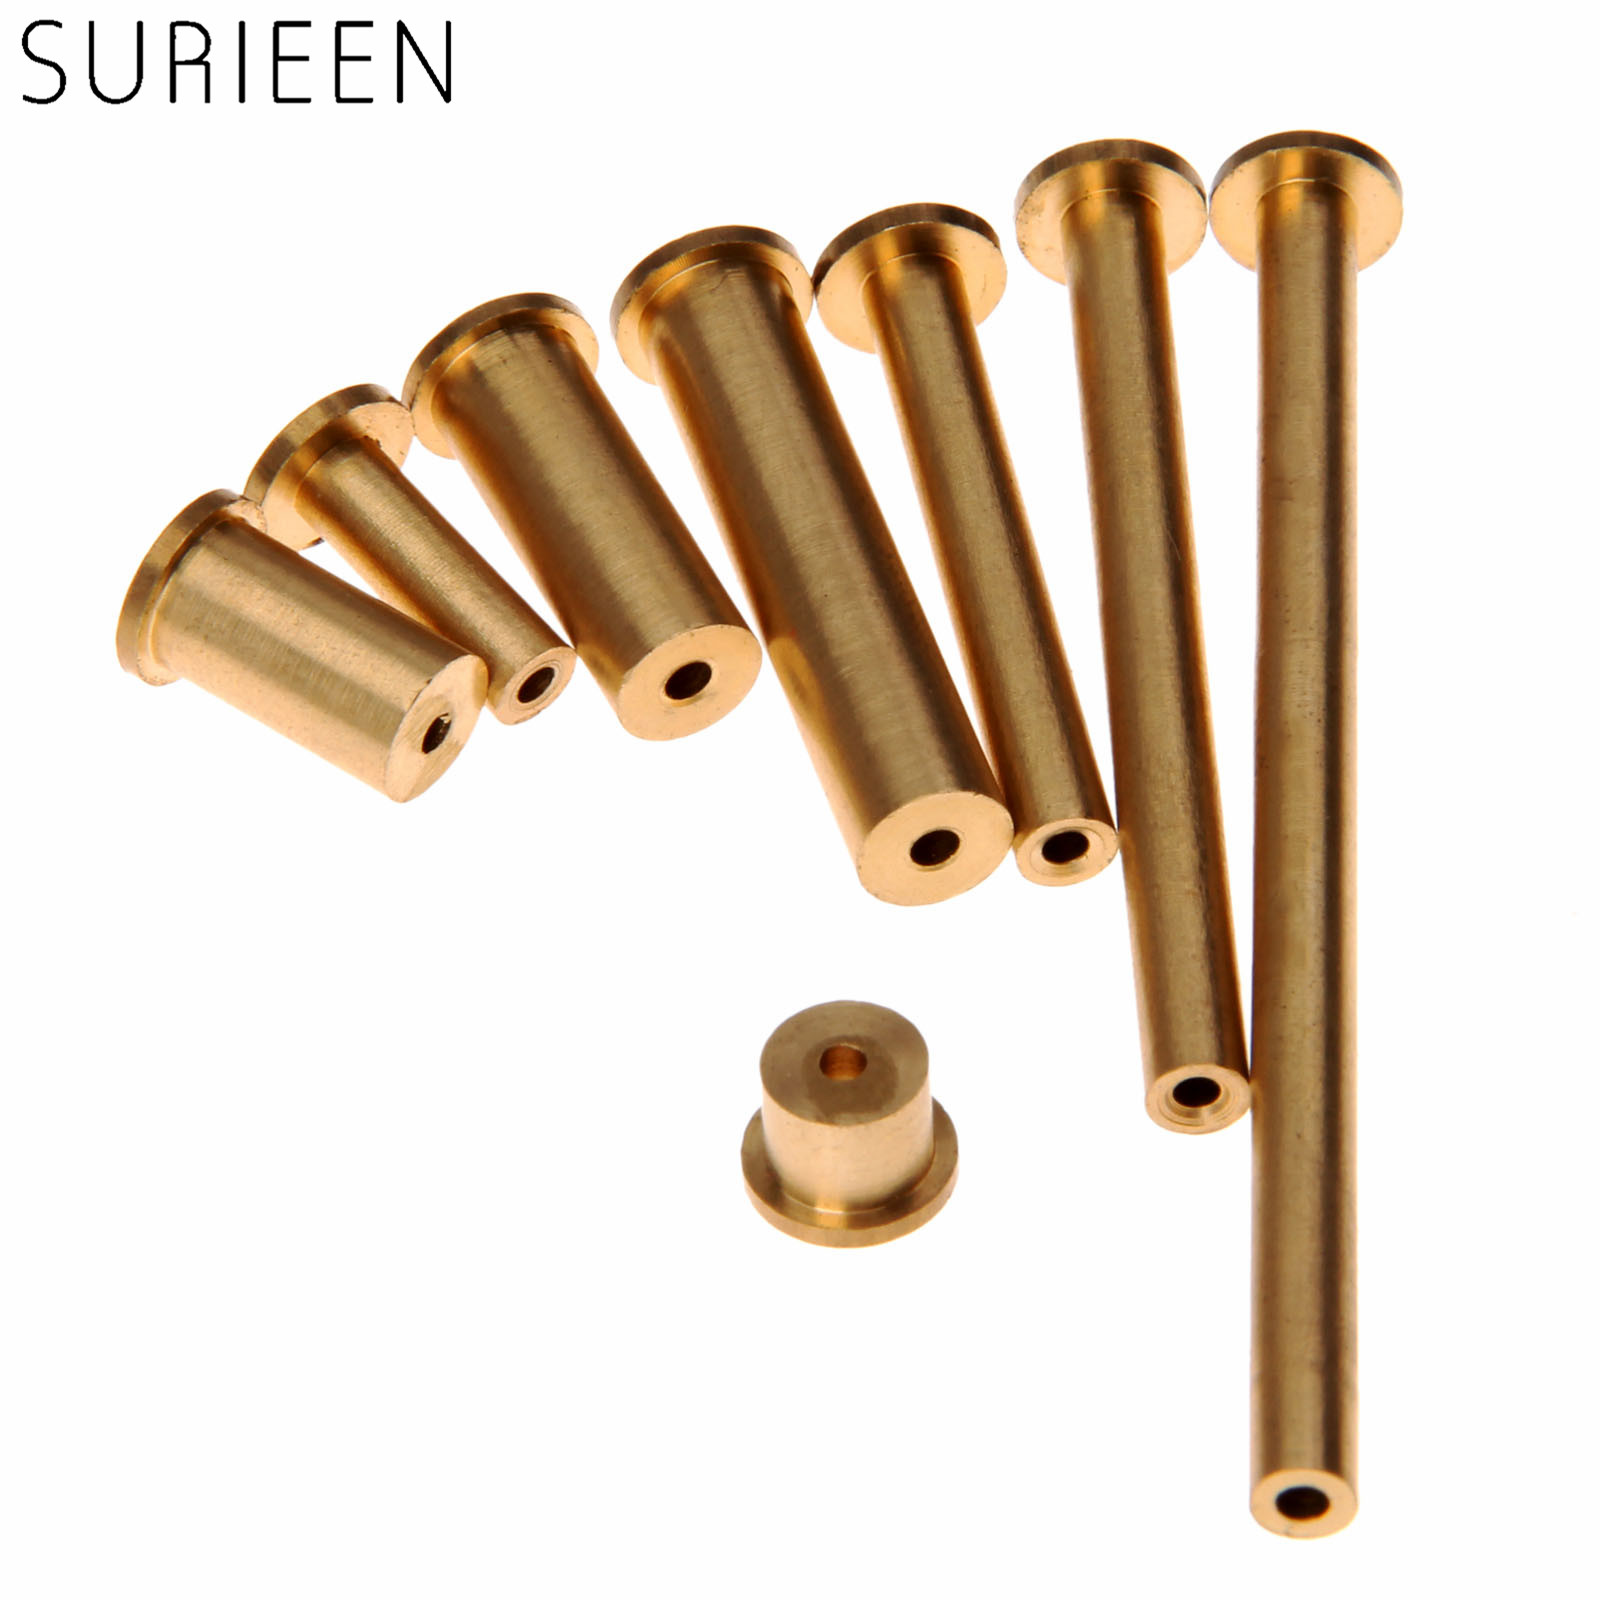 SURIEEN 8Pcs/ Set Gold Copper Nail Brass Plug Golf Weight Weights For .335 .355 .370 Tip Steel Shaft 2g 4g 6g 8g Club Head Kits